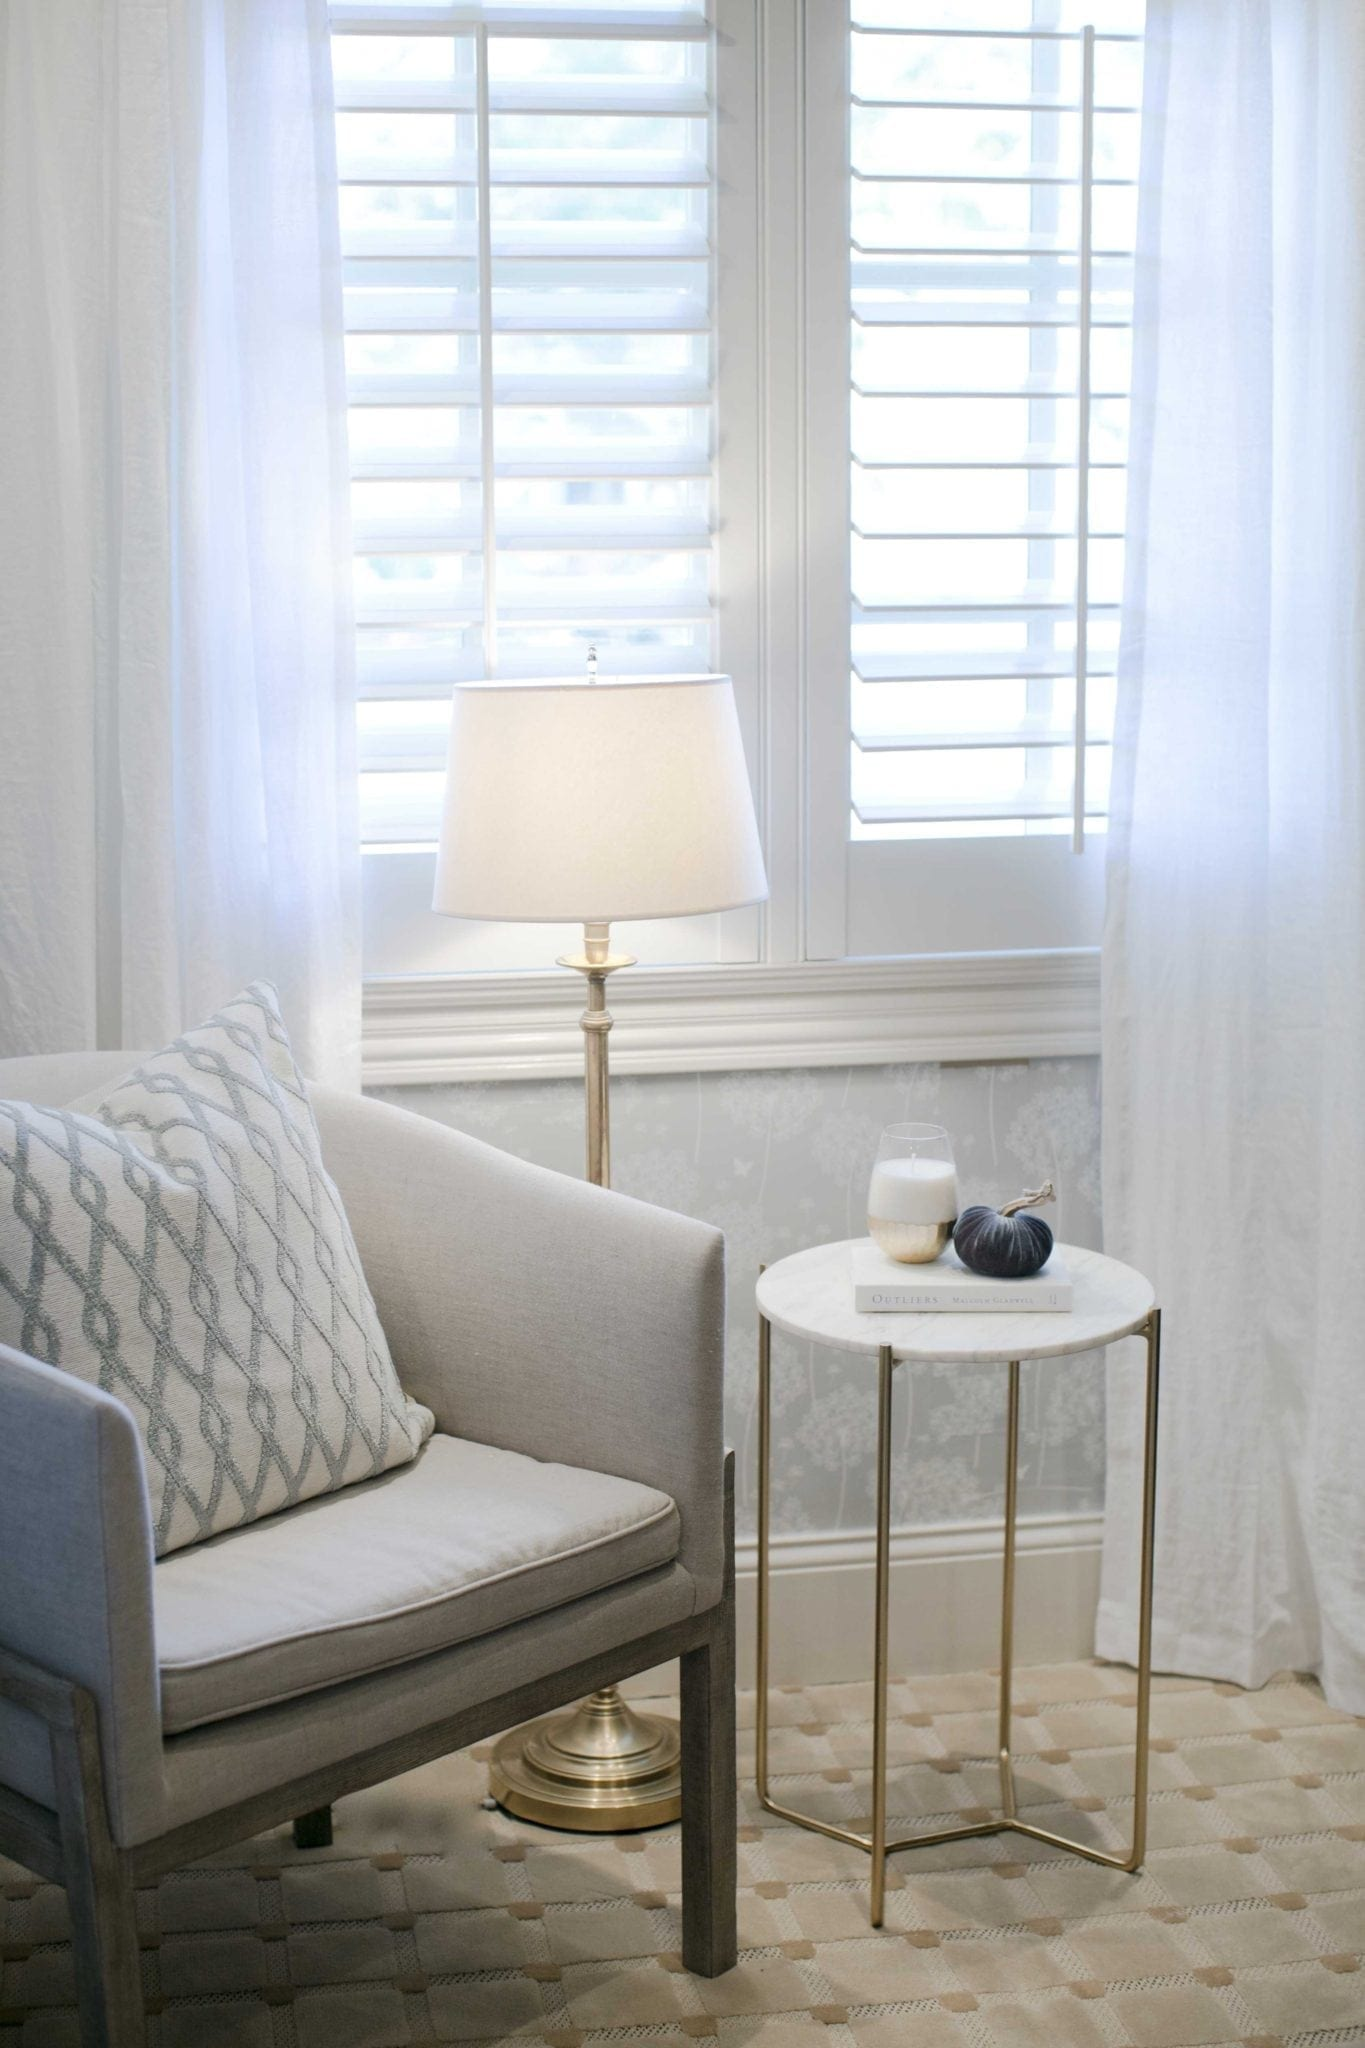 White and Gray removable wallpaper and white linen drapes from West Elm.